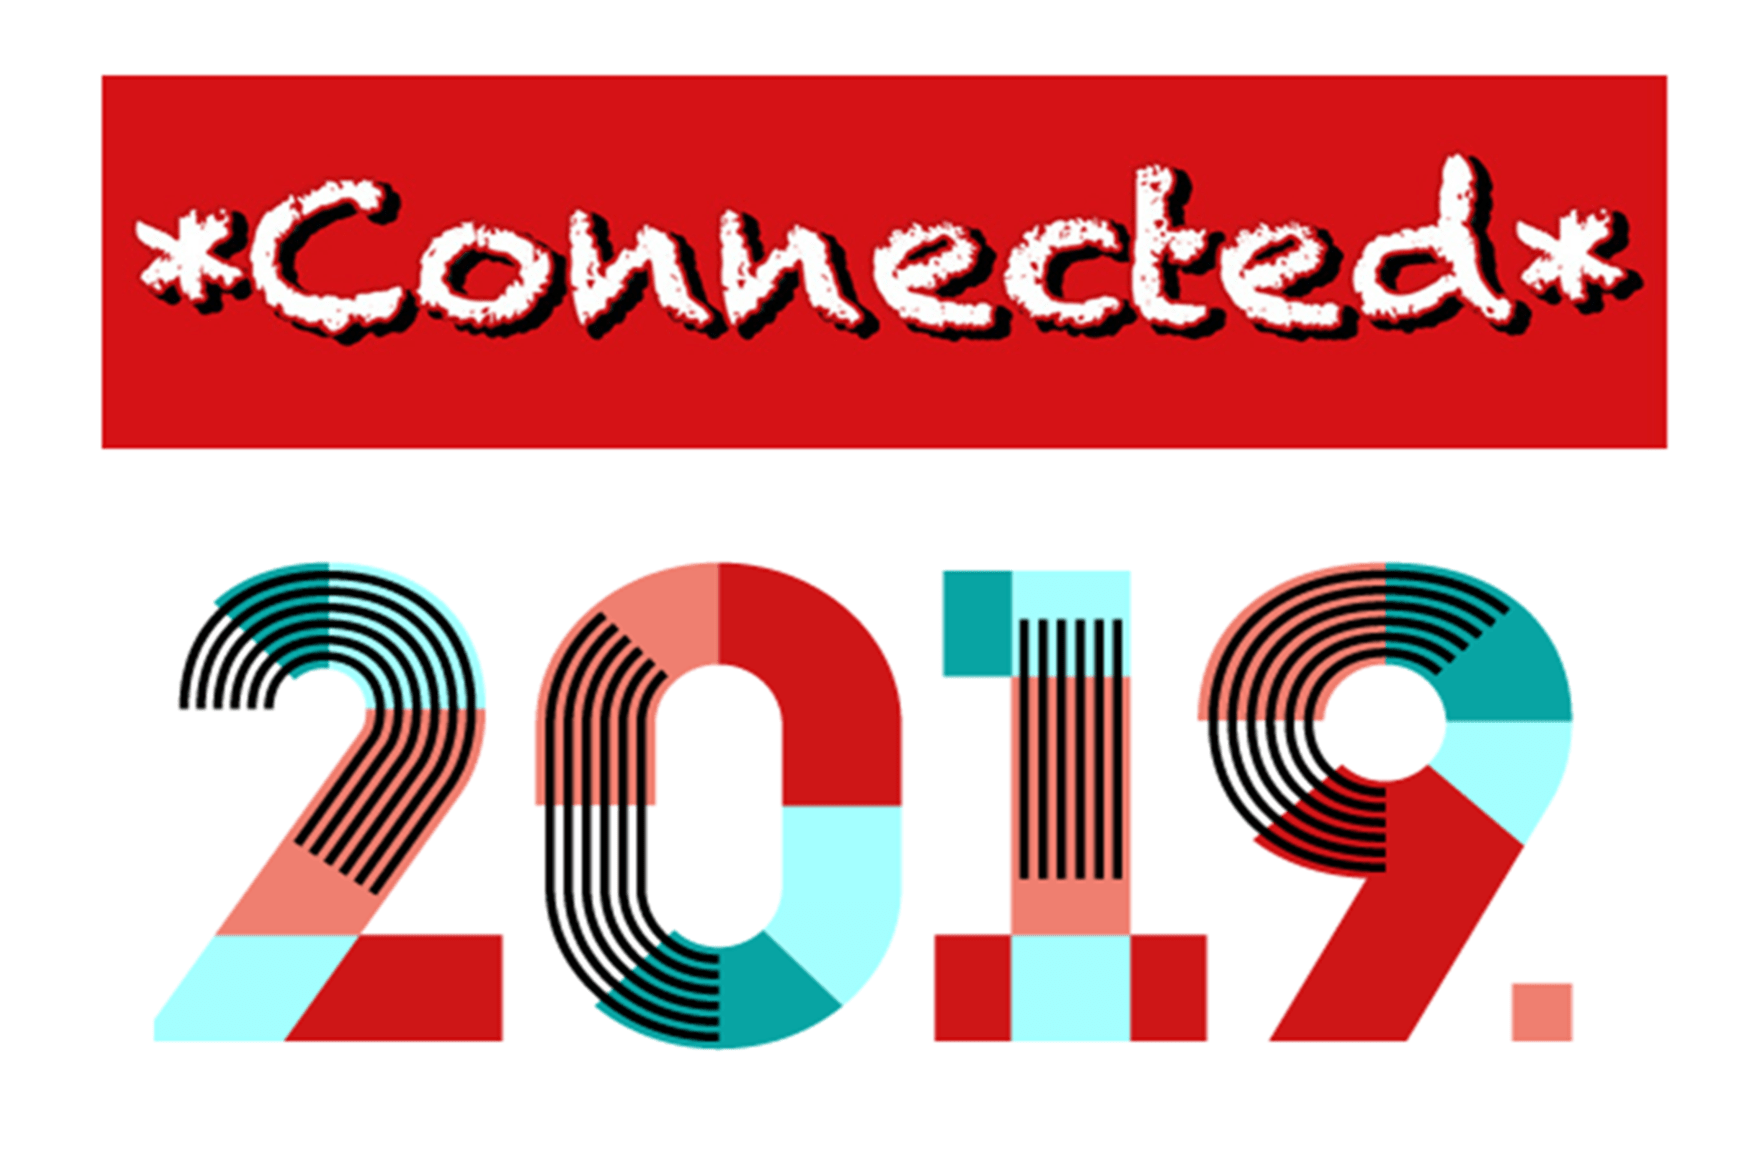 Birmingham Adult Education - Get Connected 2019